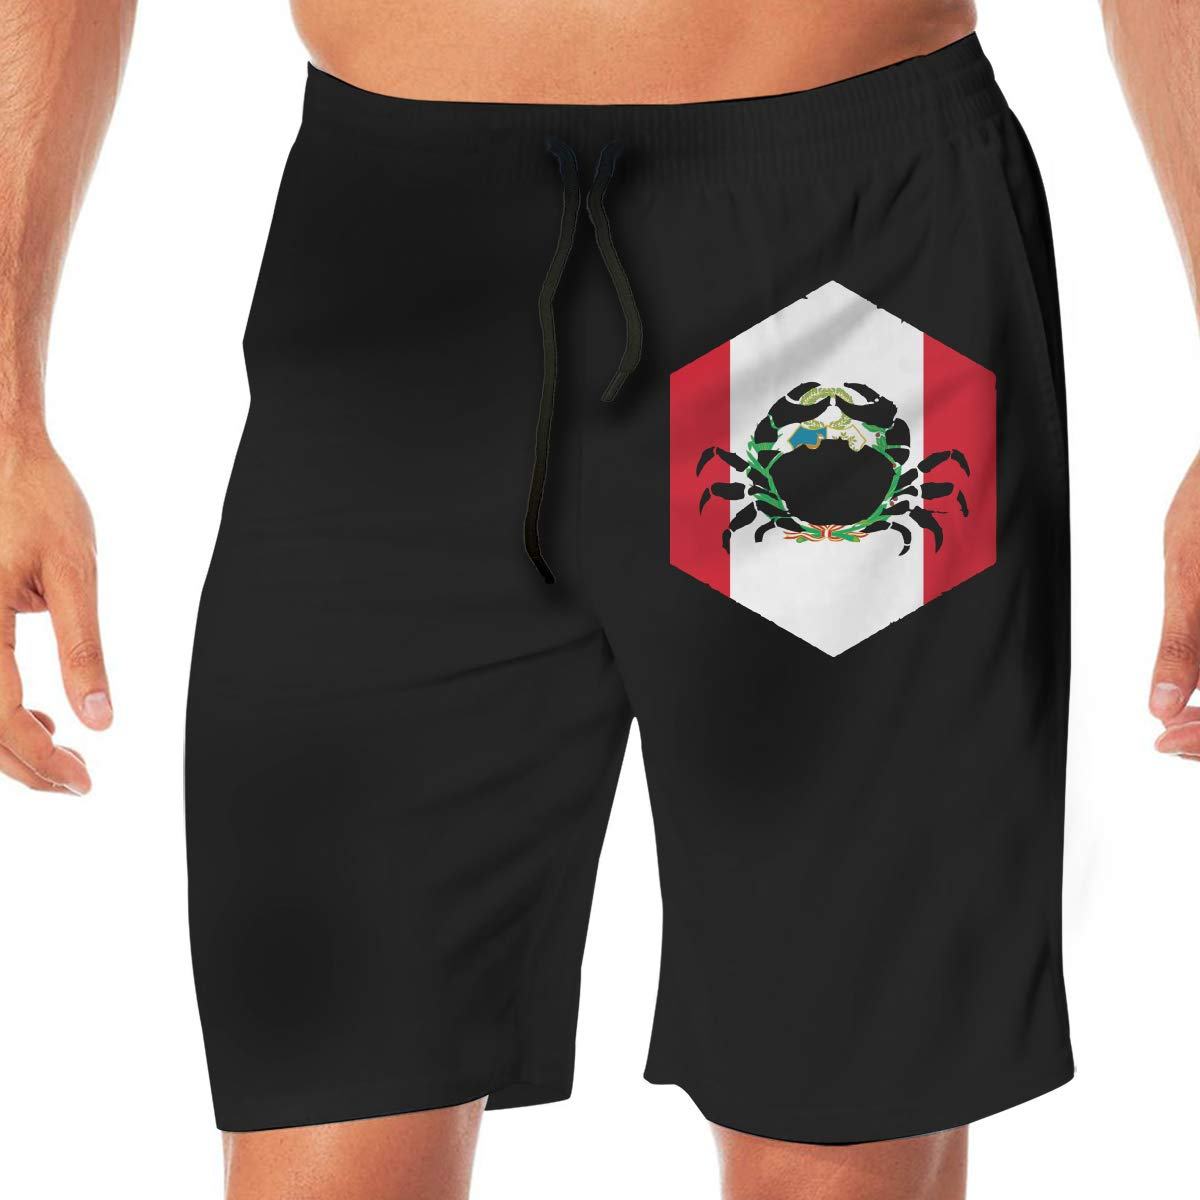 YGE.I.L25 Men Workout Shorts Peru Cancer Quick Dry Beach Board Short with Pocket